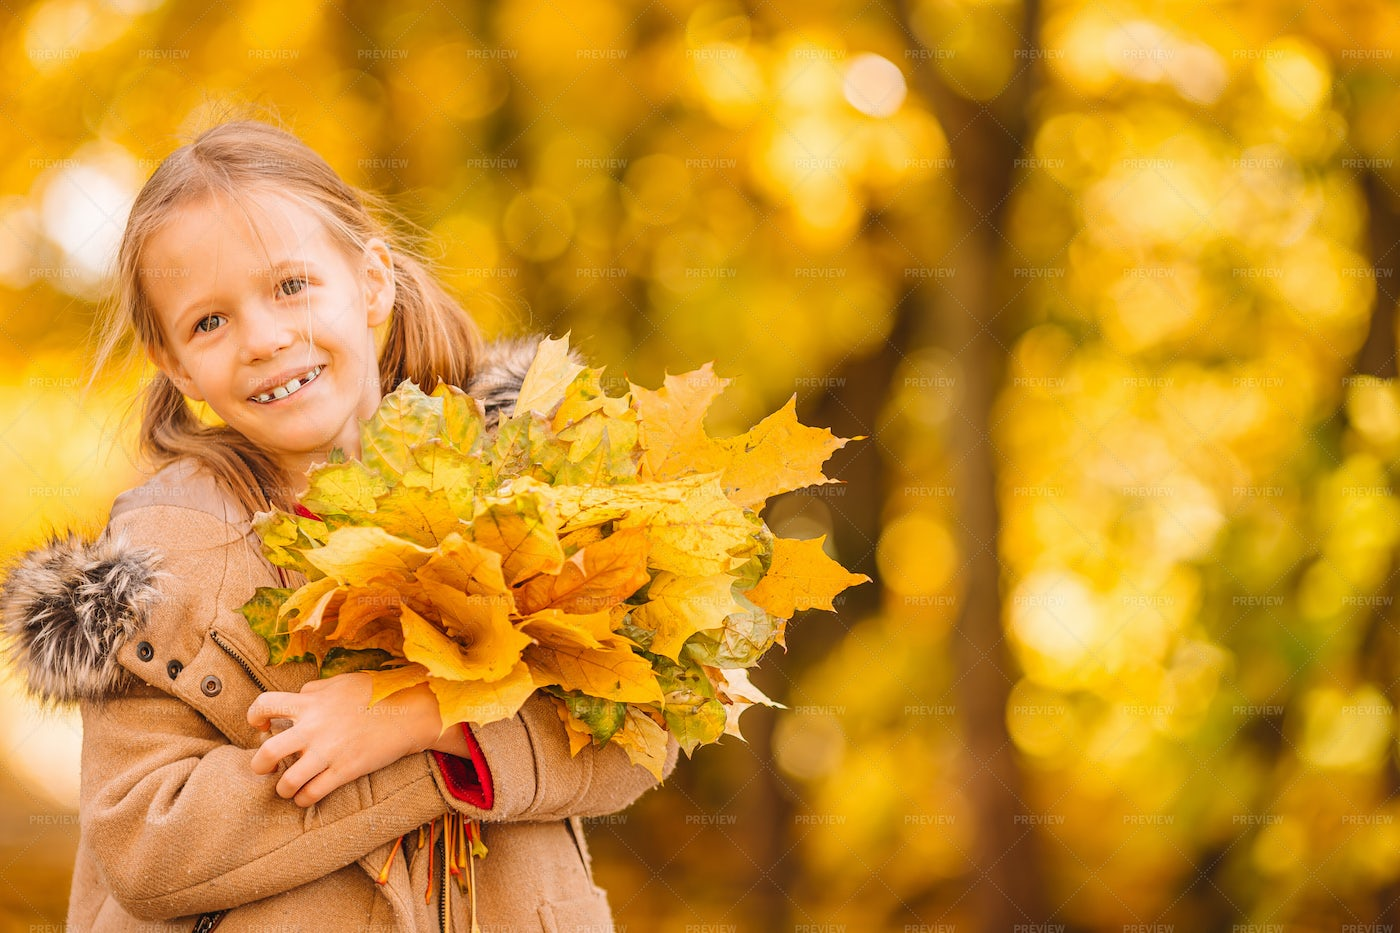 Little Girl At The Park: Stock Photos